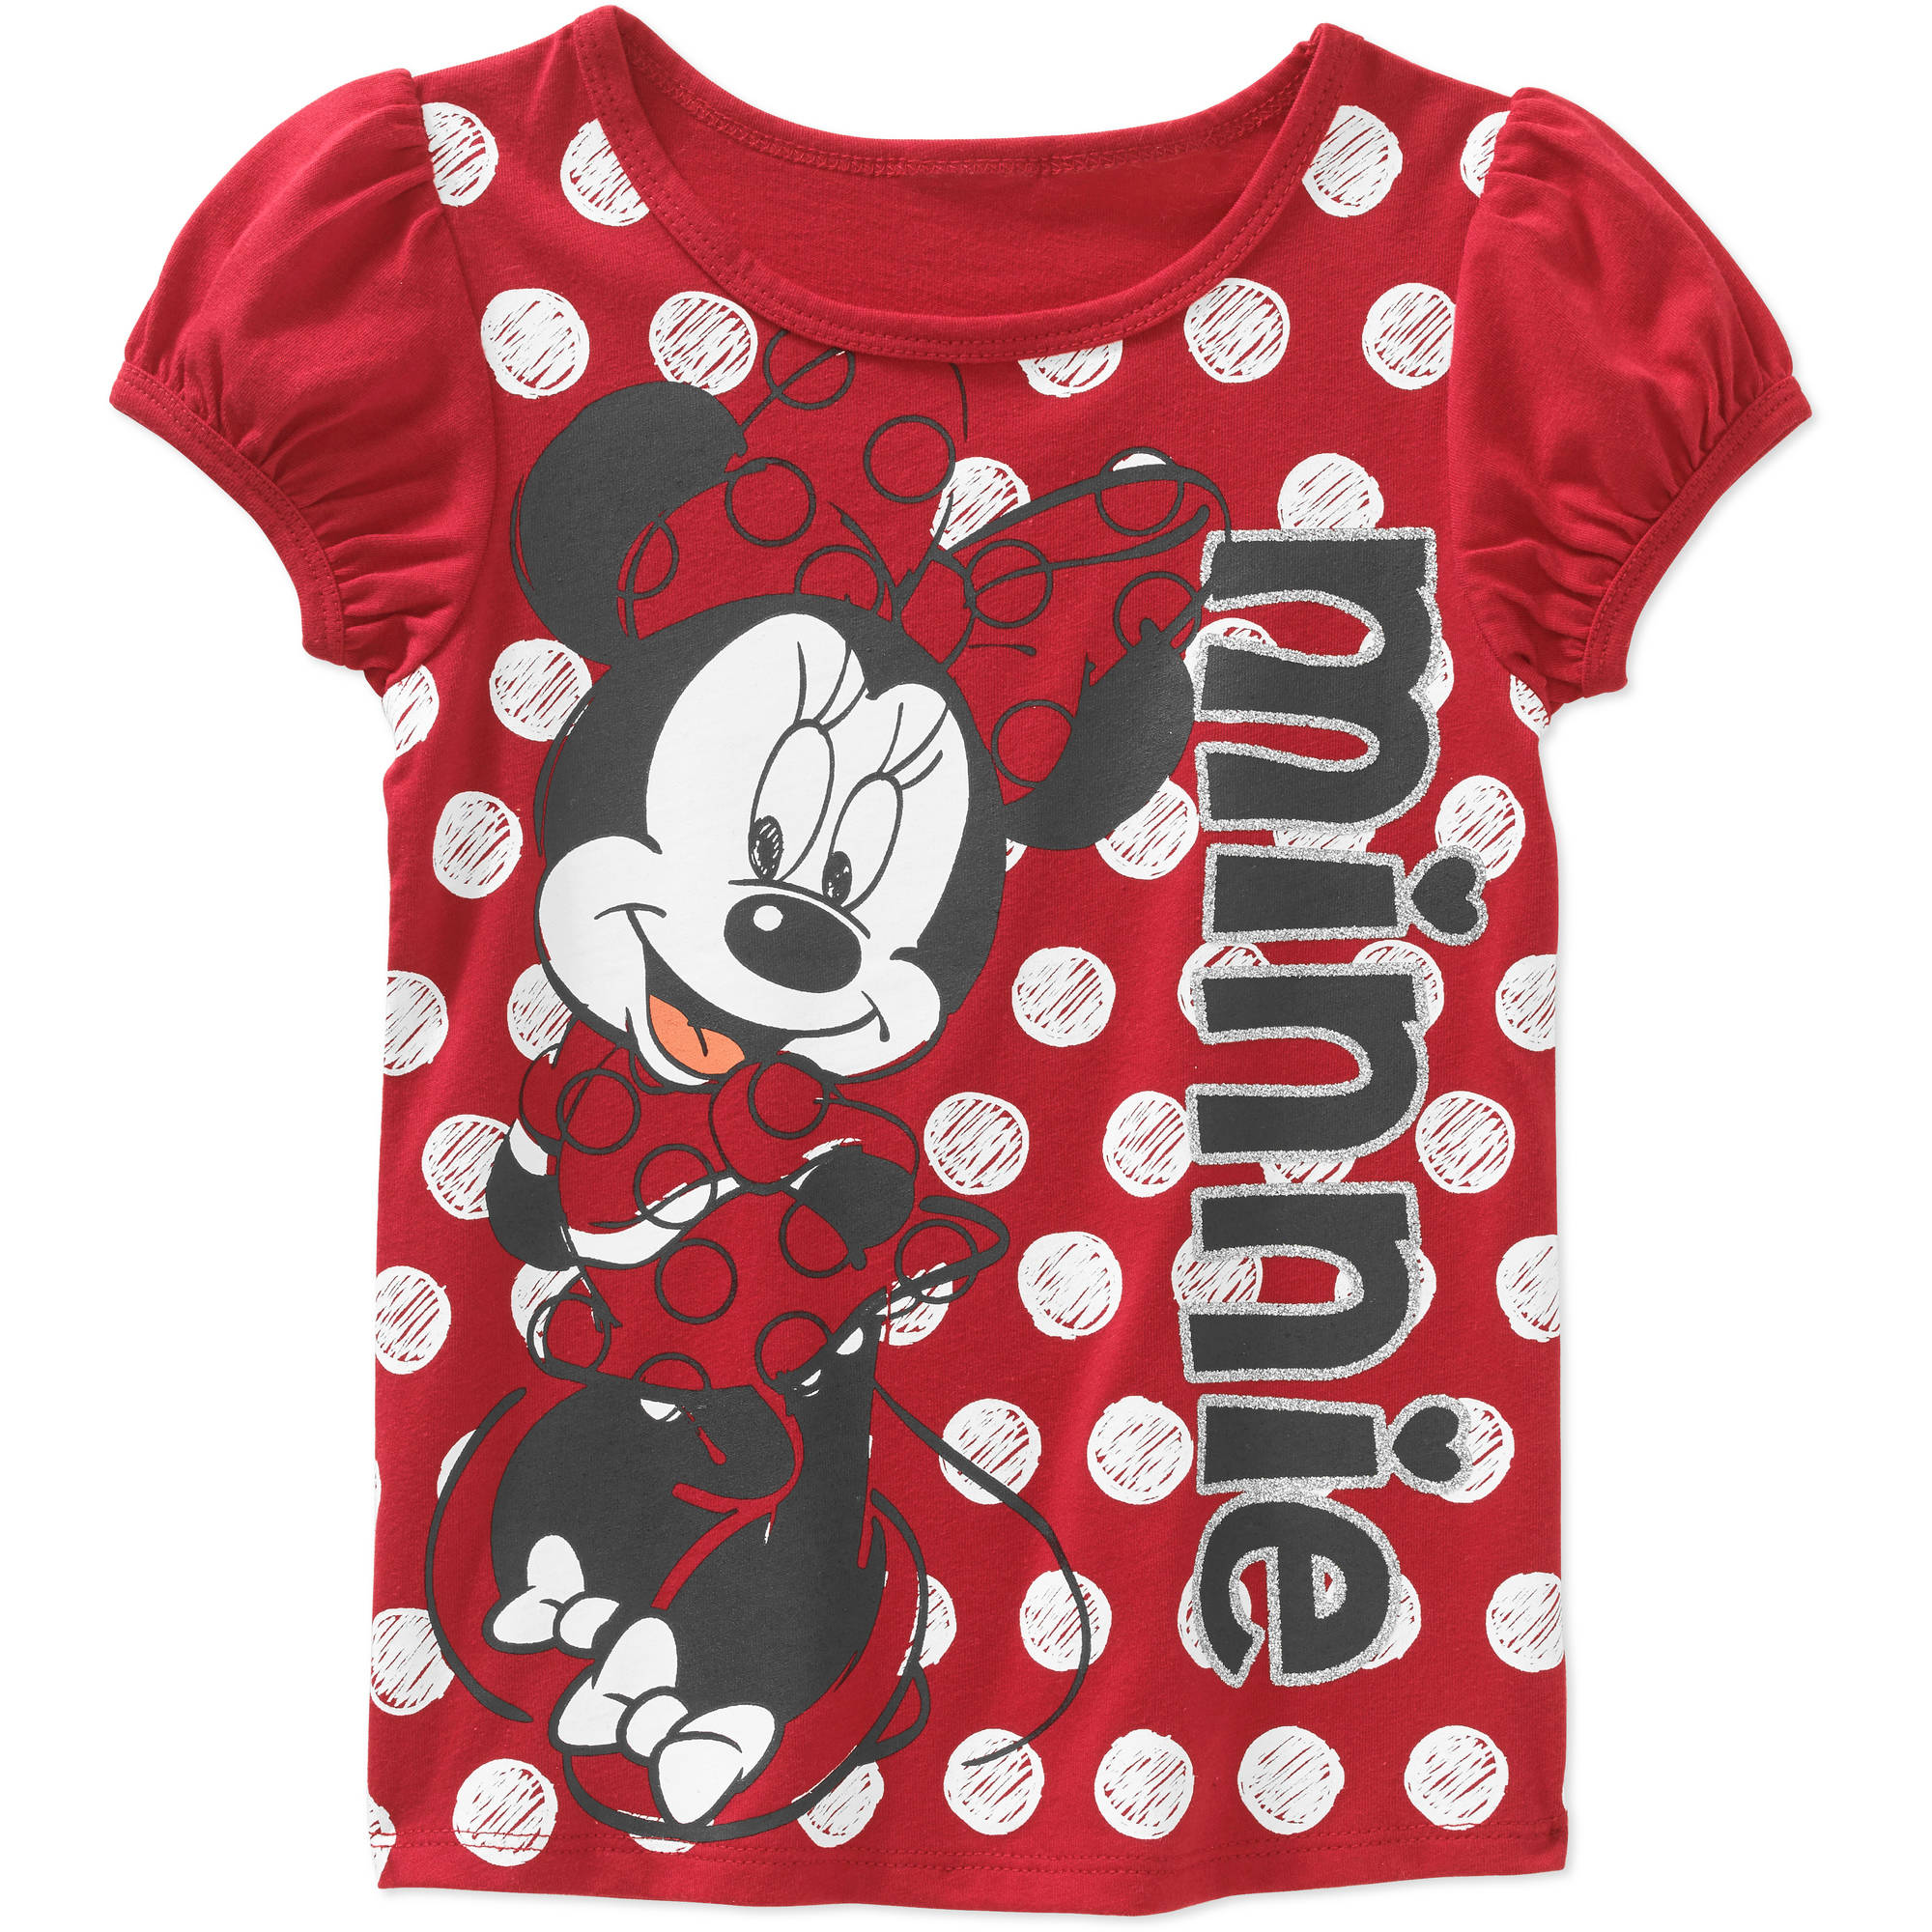 Minnie Mouse Toddler Girl Polka Dot Short Sleeve Tee